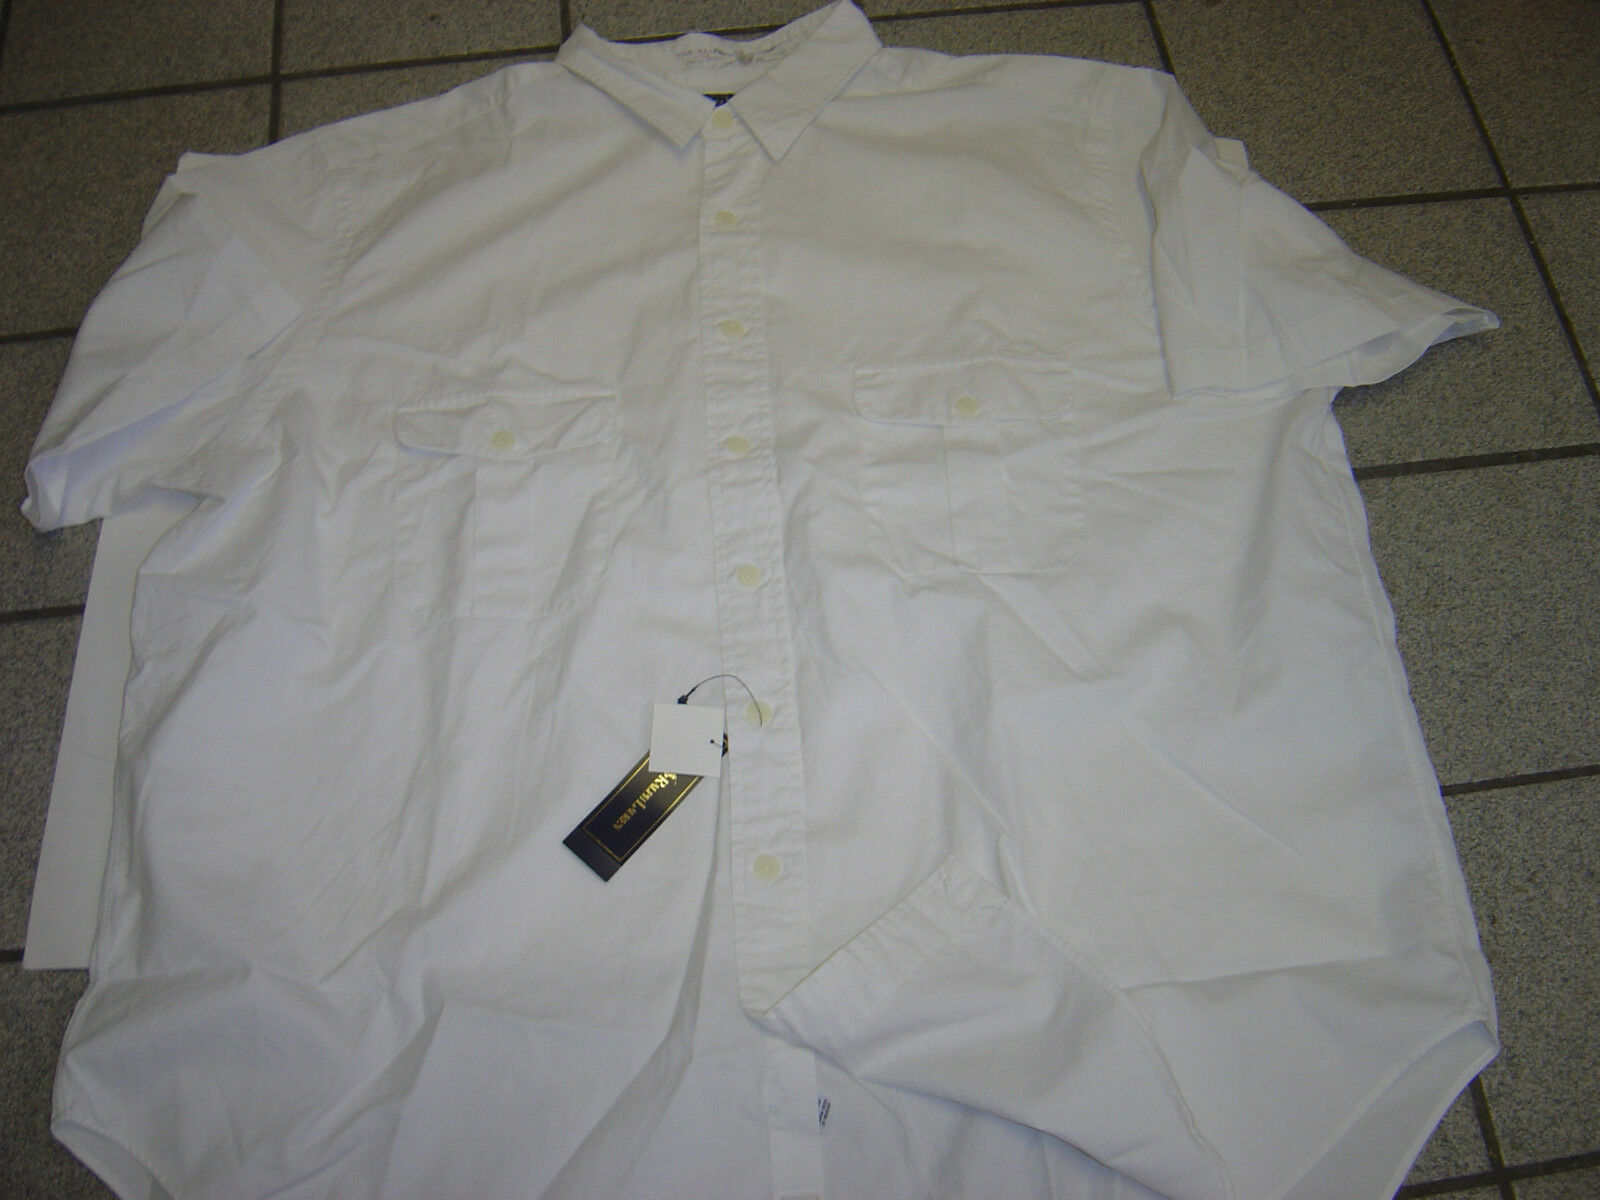 a83186123 NEW MENS RALPH LAUREN WHITE S COTTON SHIRT SIZE 4XLT BIG S  ndafmf3090-Casual Button-Down Shirts